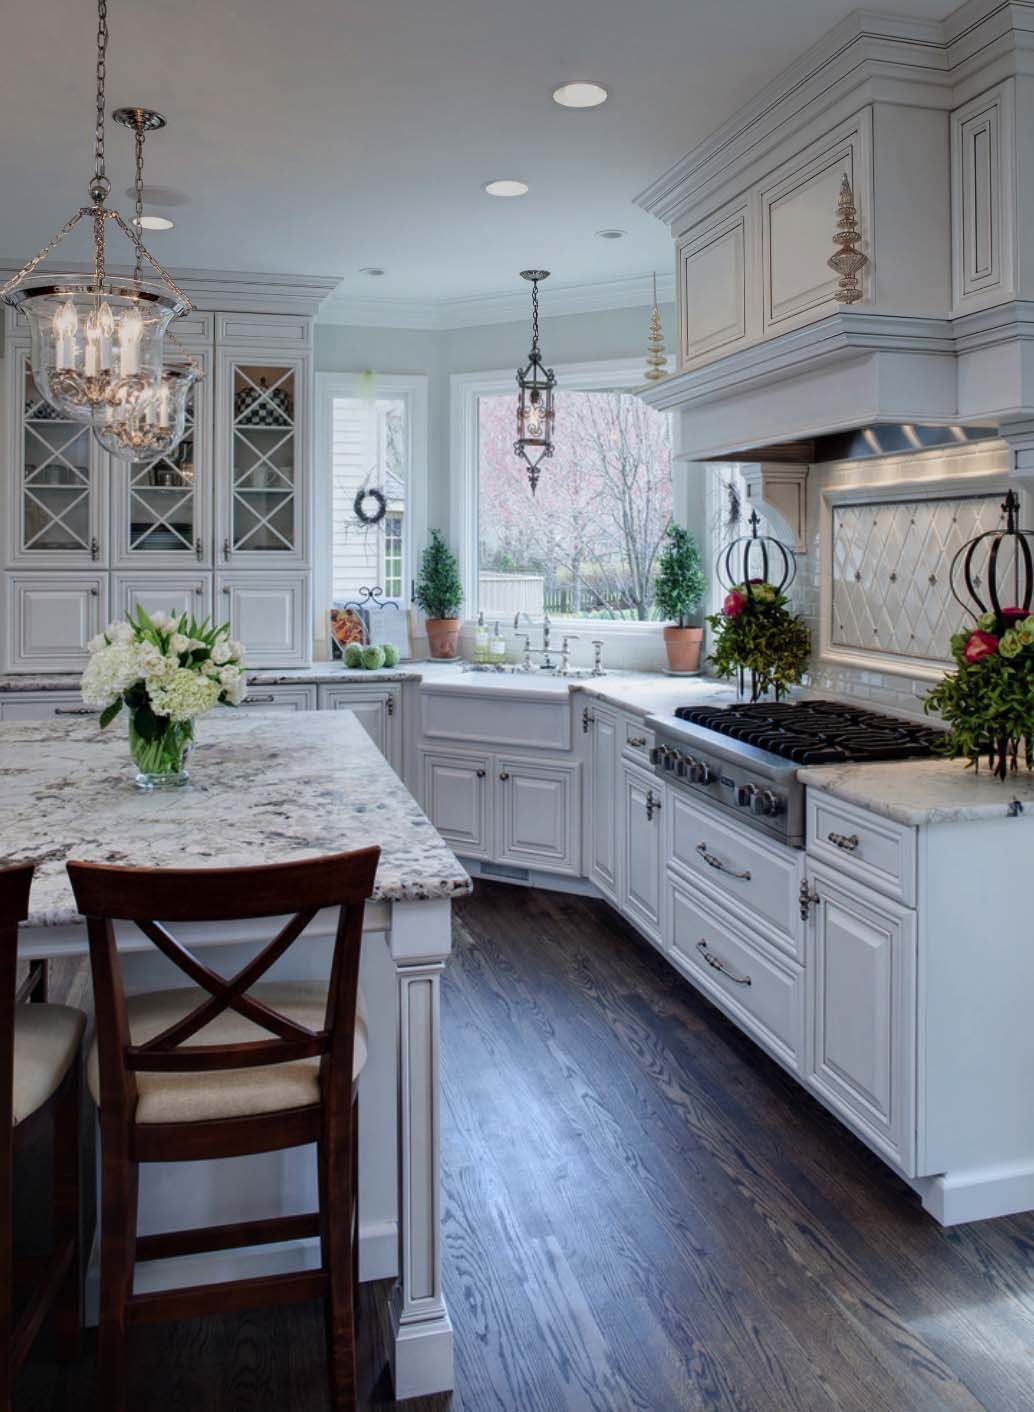 Best 30 Beautiful And Inspiring Light Filled Kitchens With 400 x 300